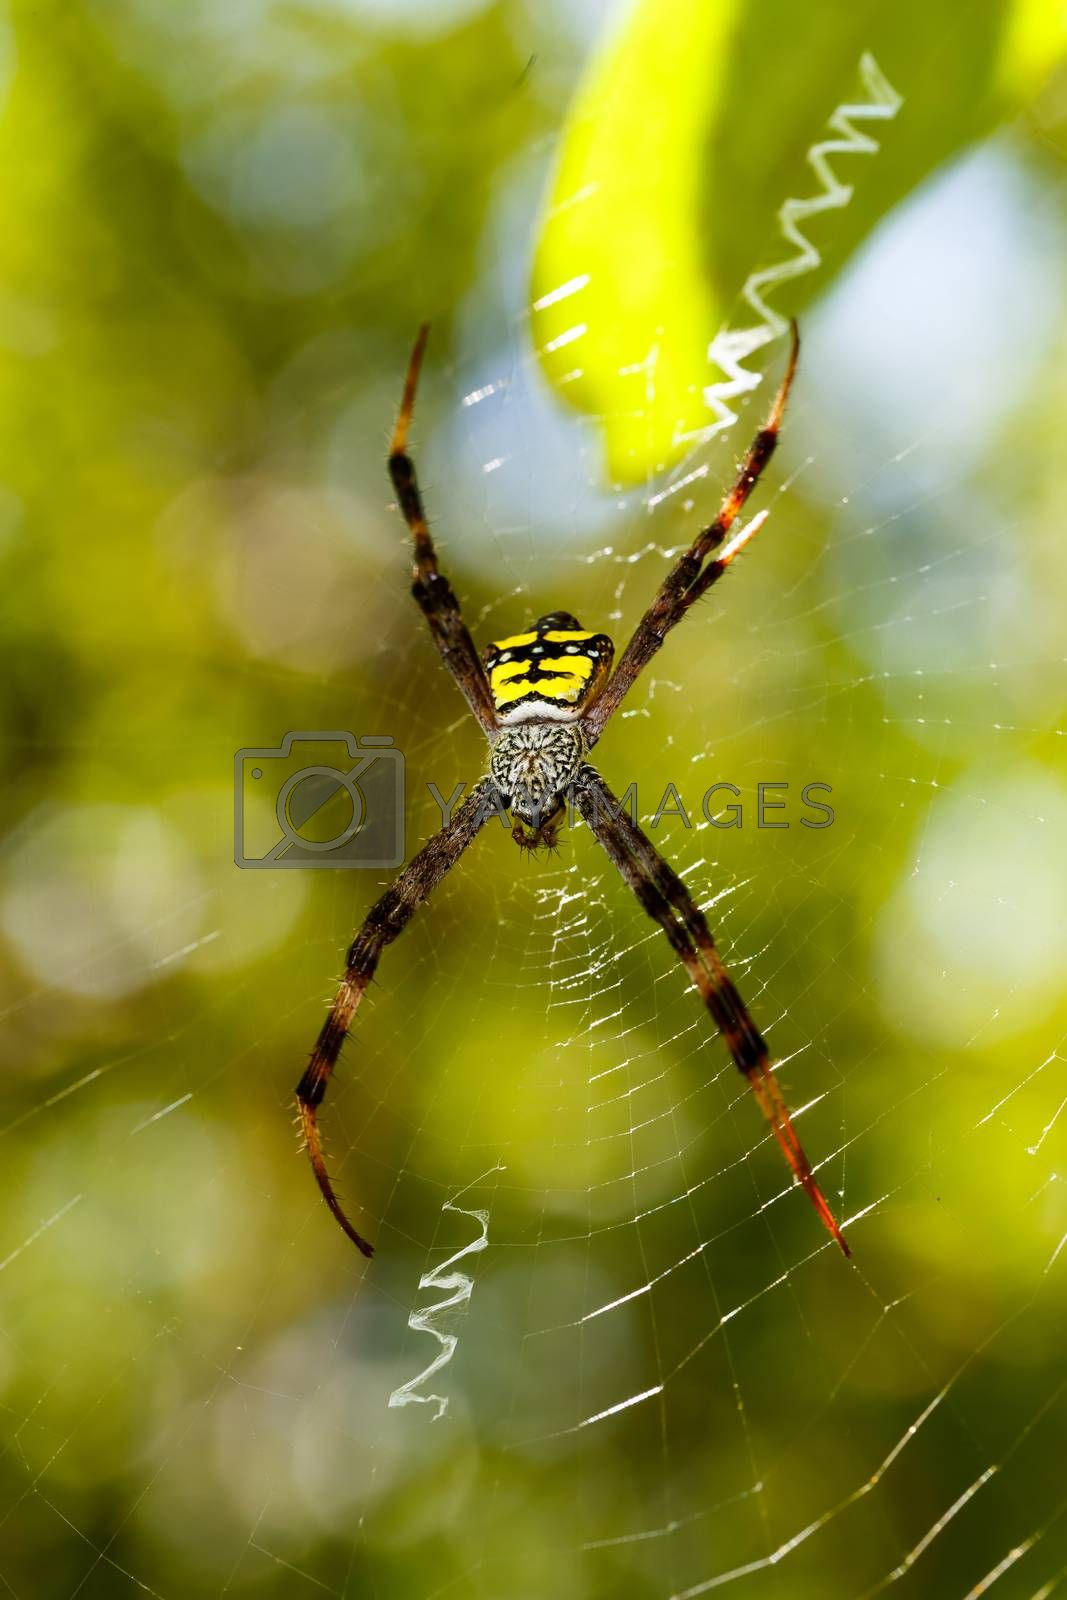 Argiope aemula is a species of spider in the family Araneidae, Tangkoko National Park, North Sulawesi, Indonesia wildlife